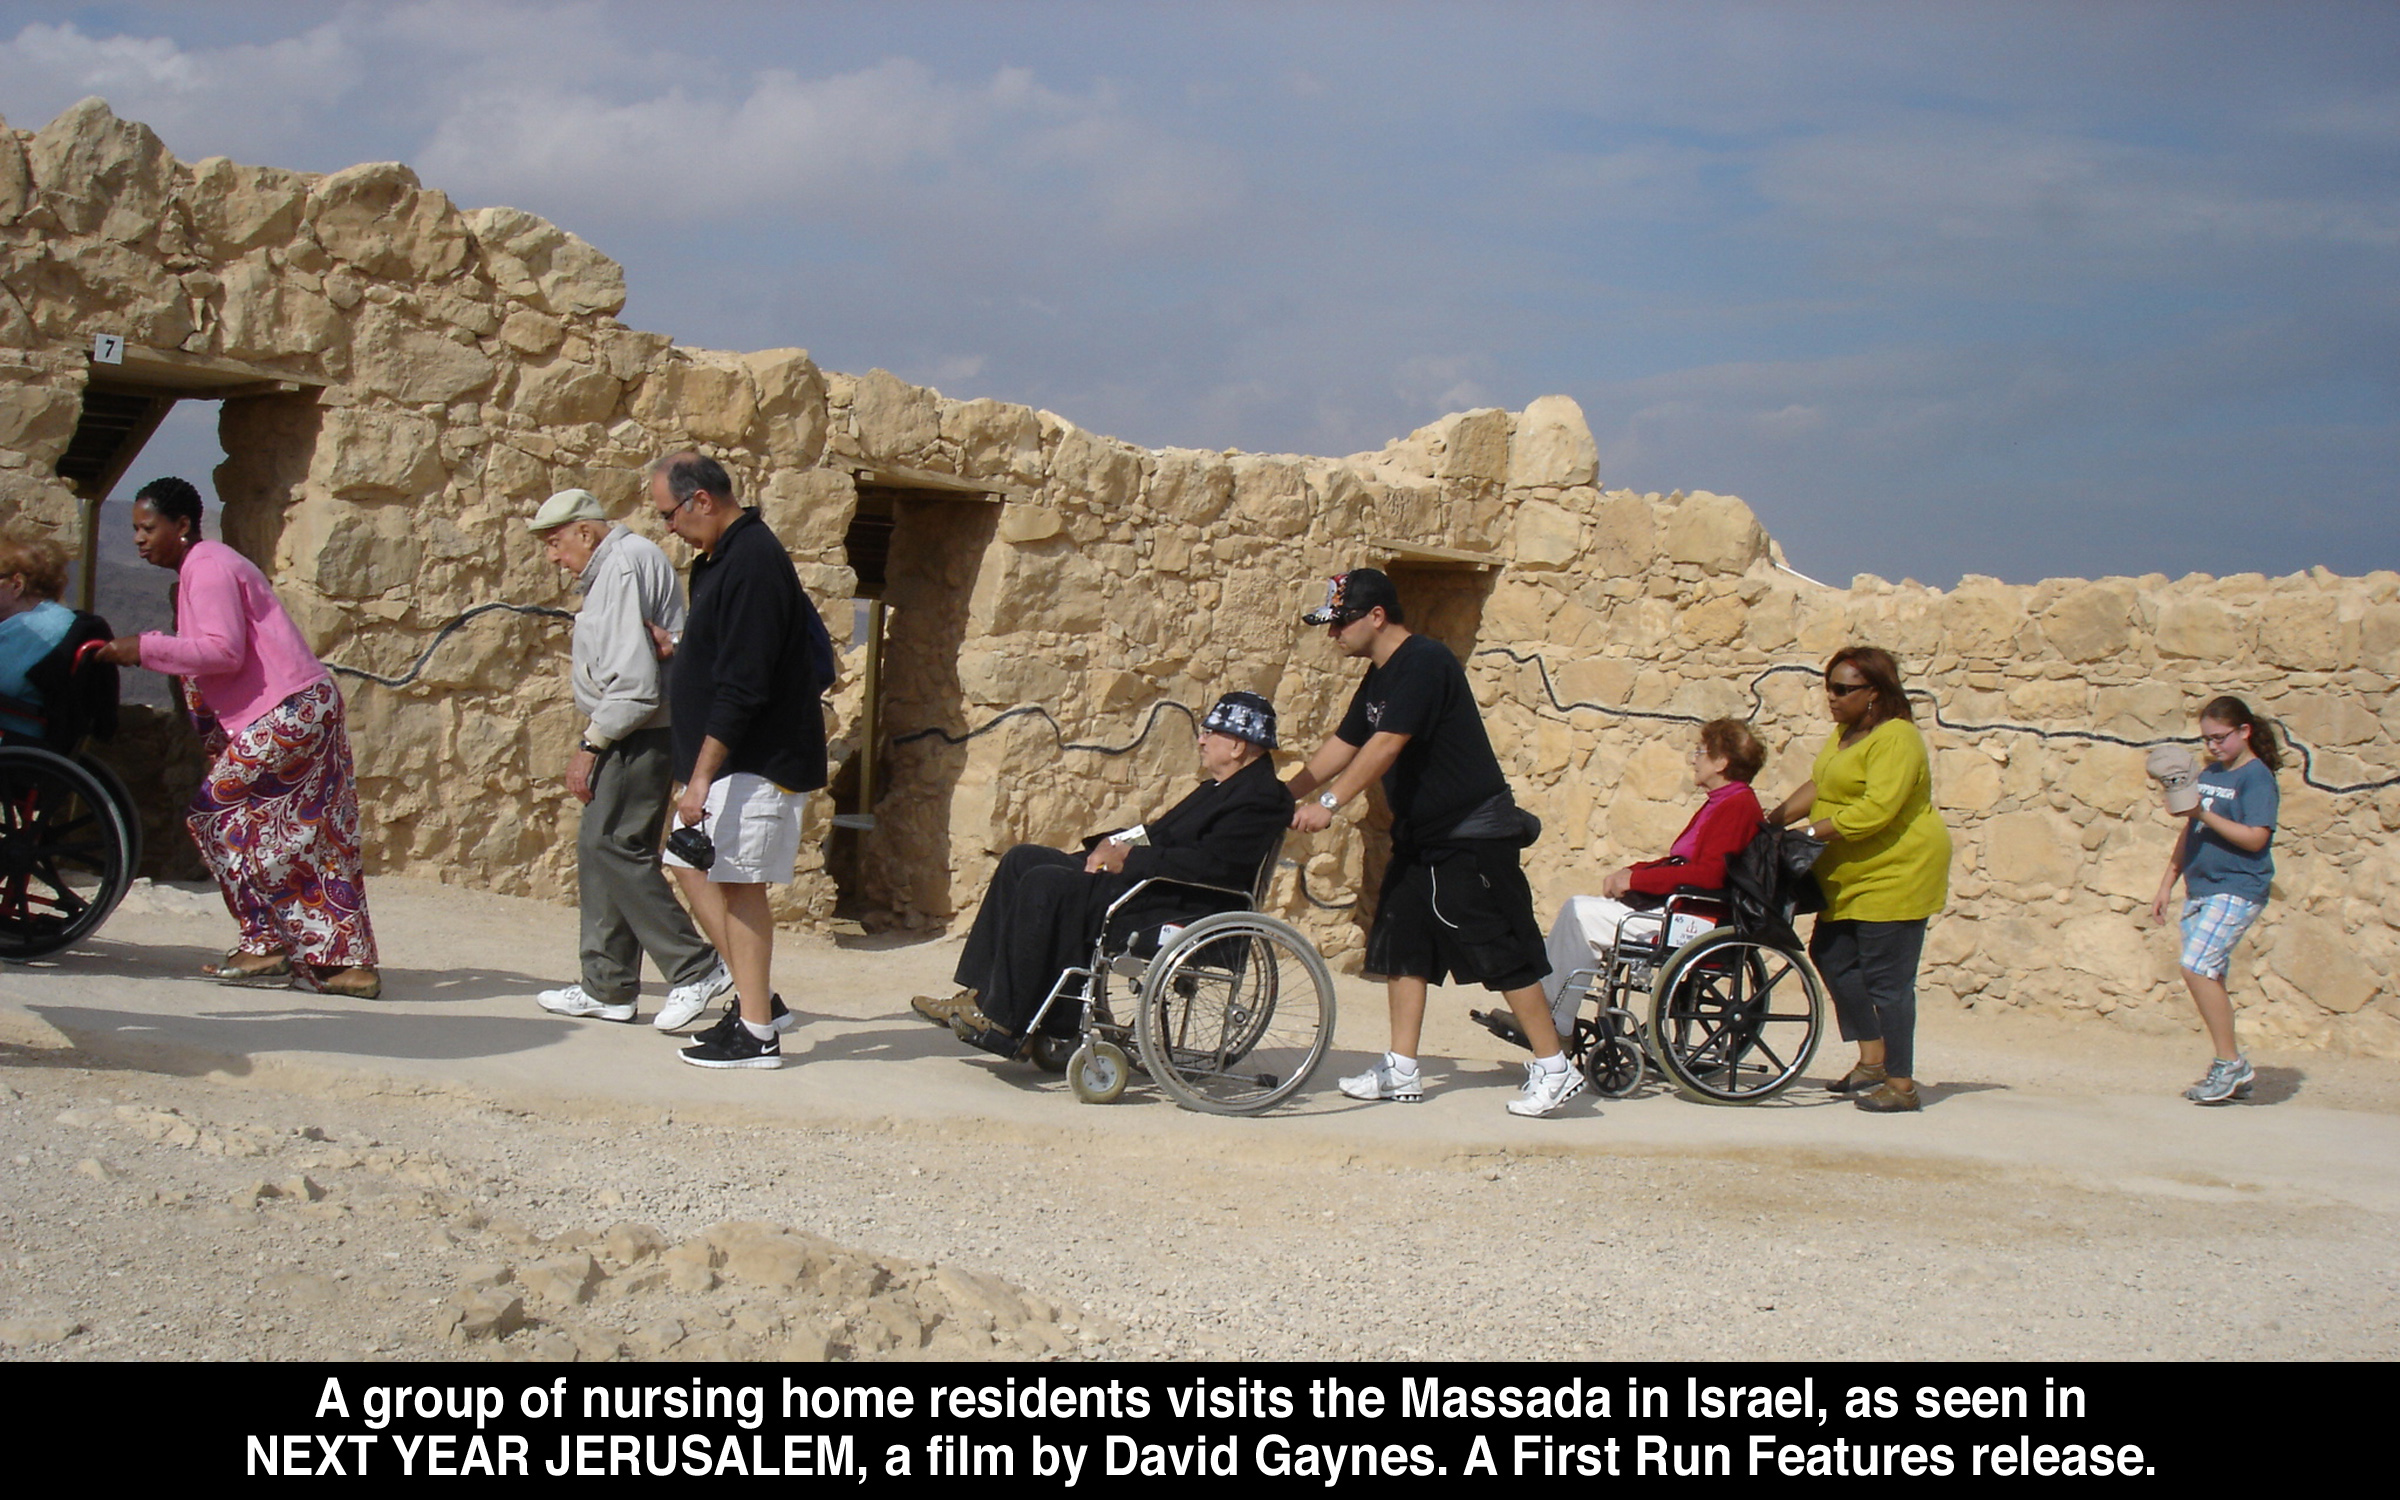 A group of nursing home residents visit the Massada in Israel, as seen in Next Year   Jerusalem, a film by David Gaynes.